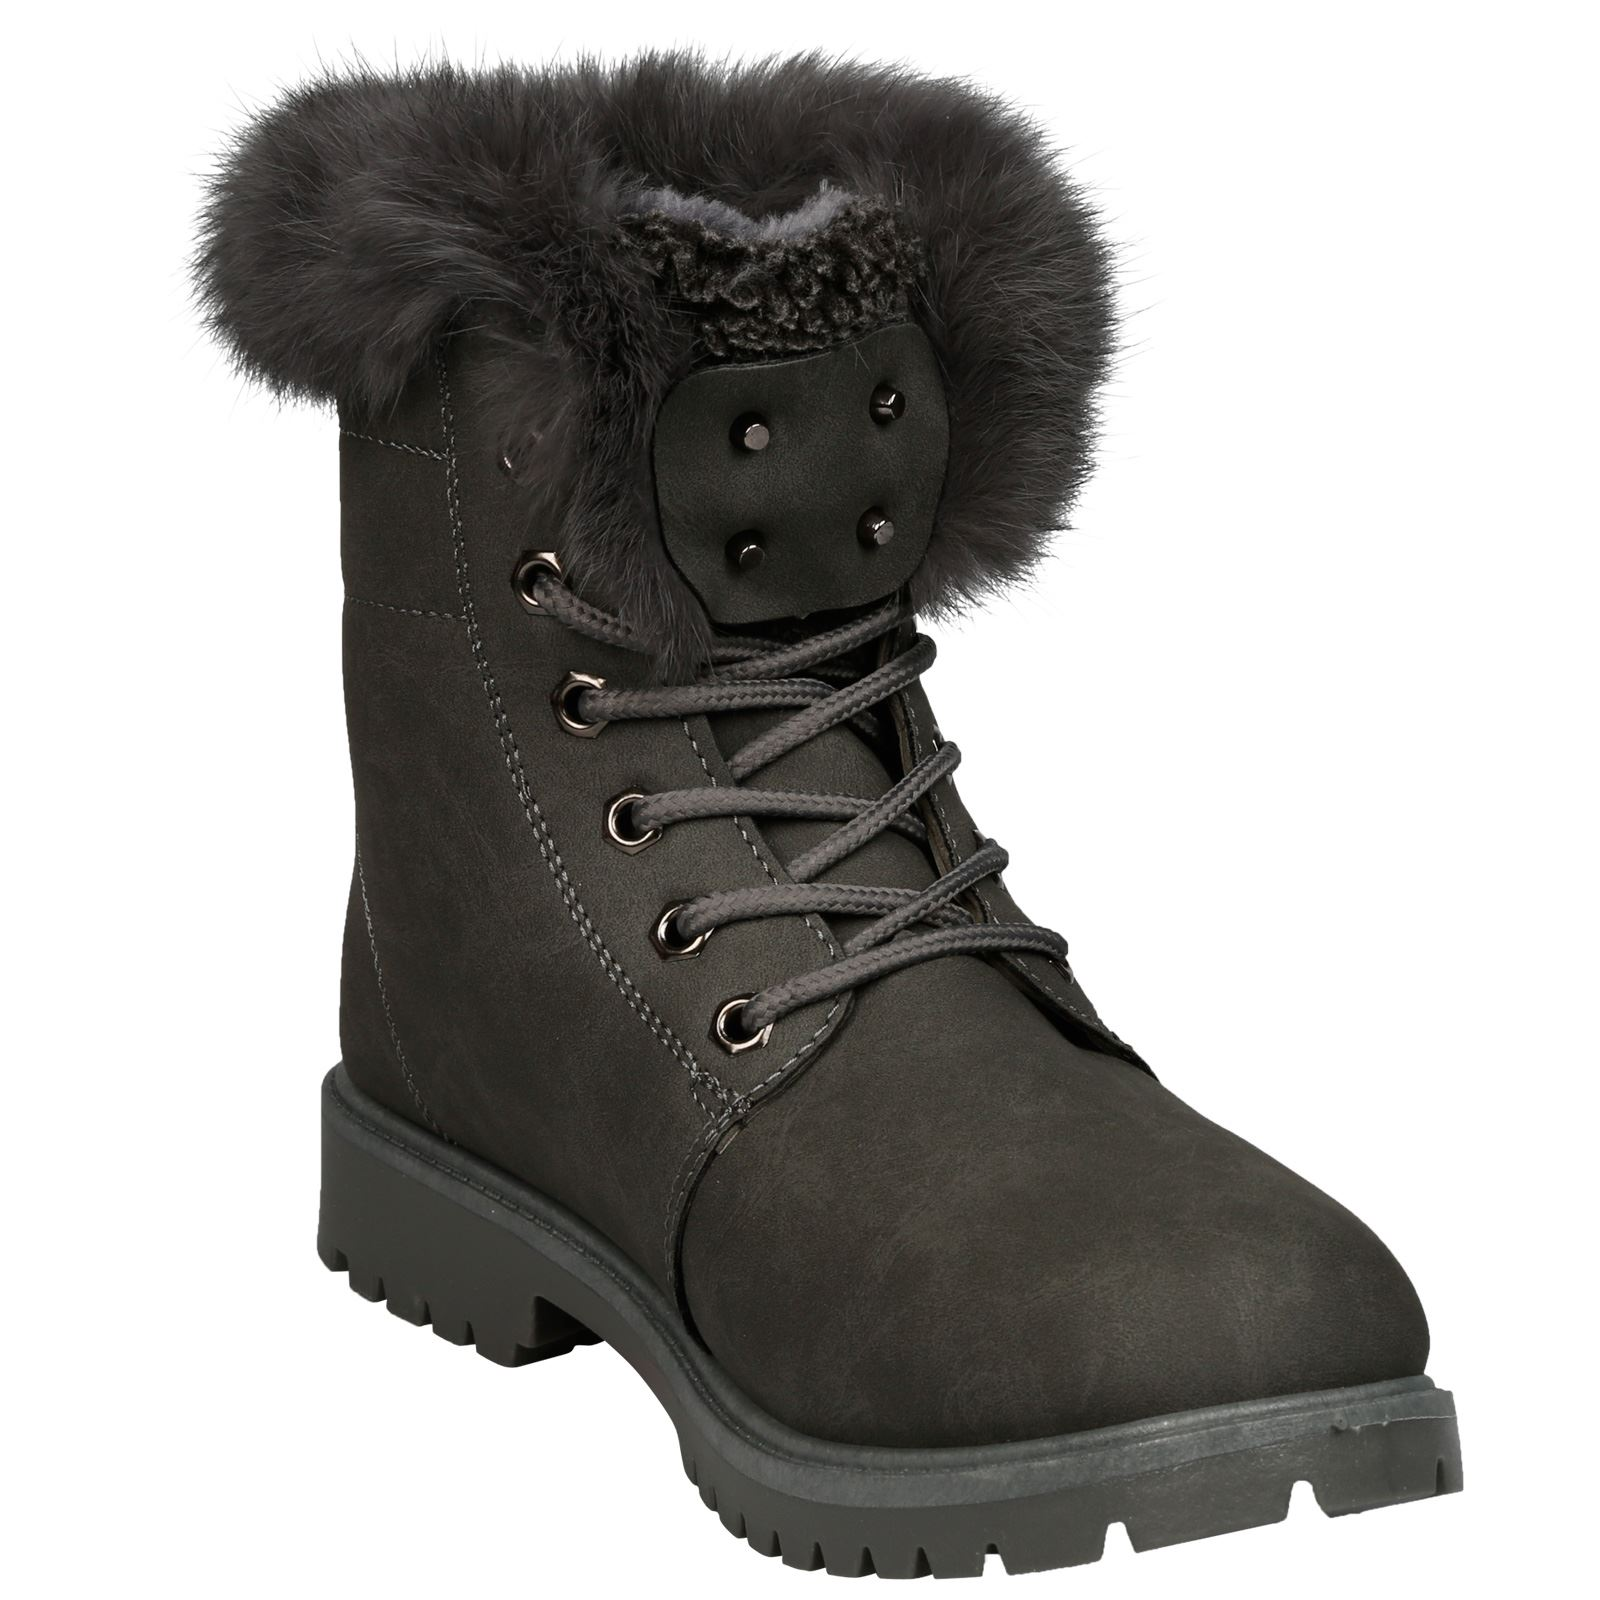 NEW-WOMEN-SHOES-LADIES-FUR-LINED-LOW-HEEL-LACE-UP-ANKLE-BOOTS-CASUAL-STYLE-SIZE thumbnail 21